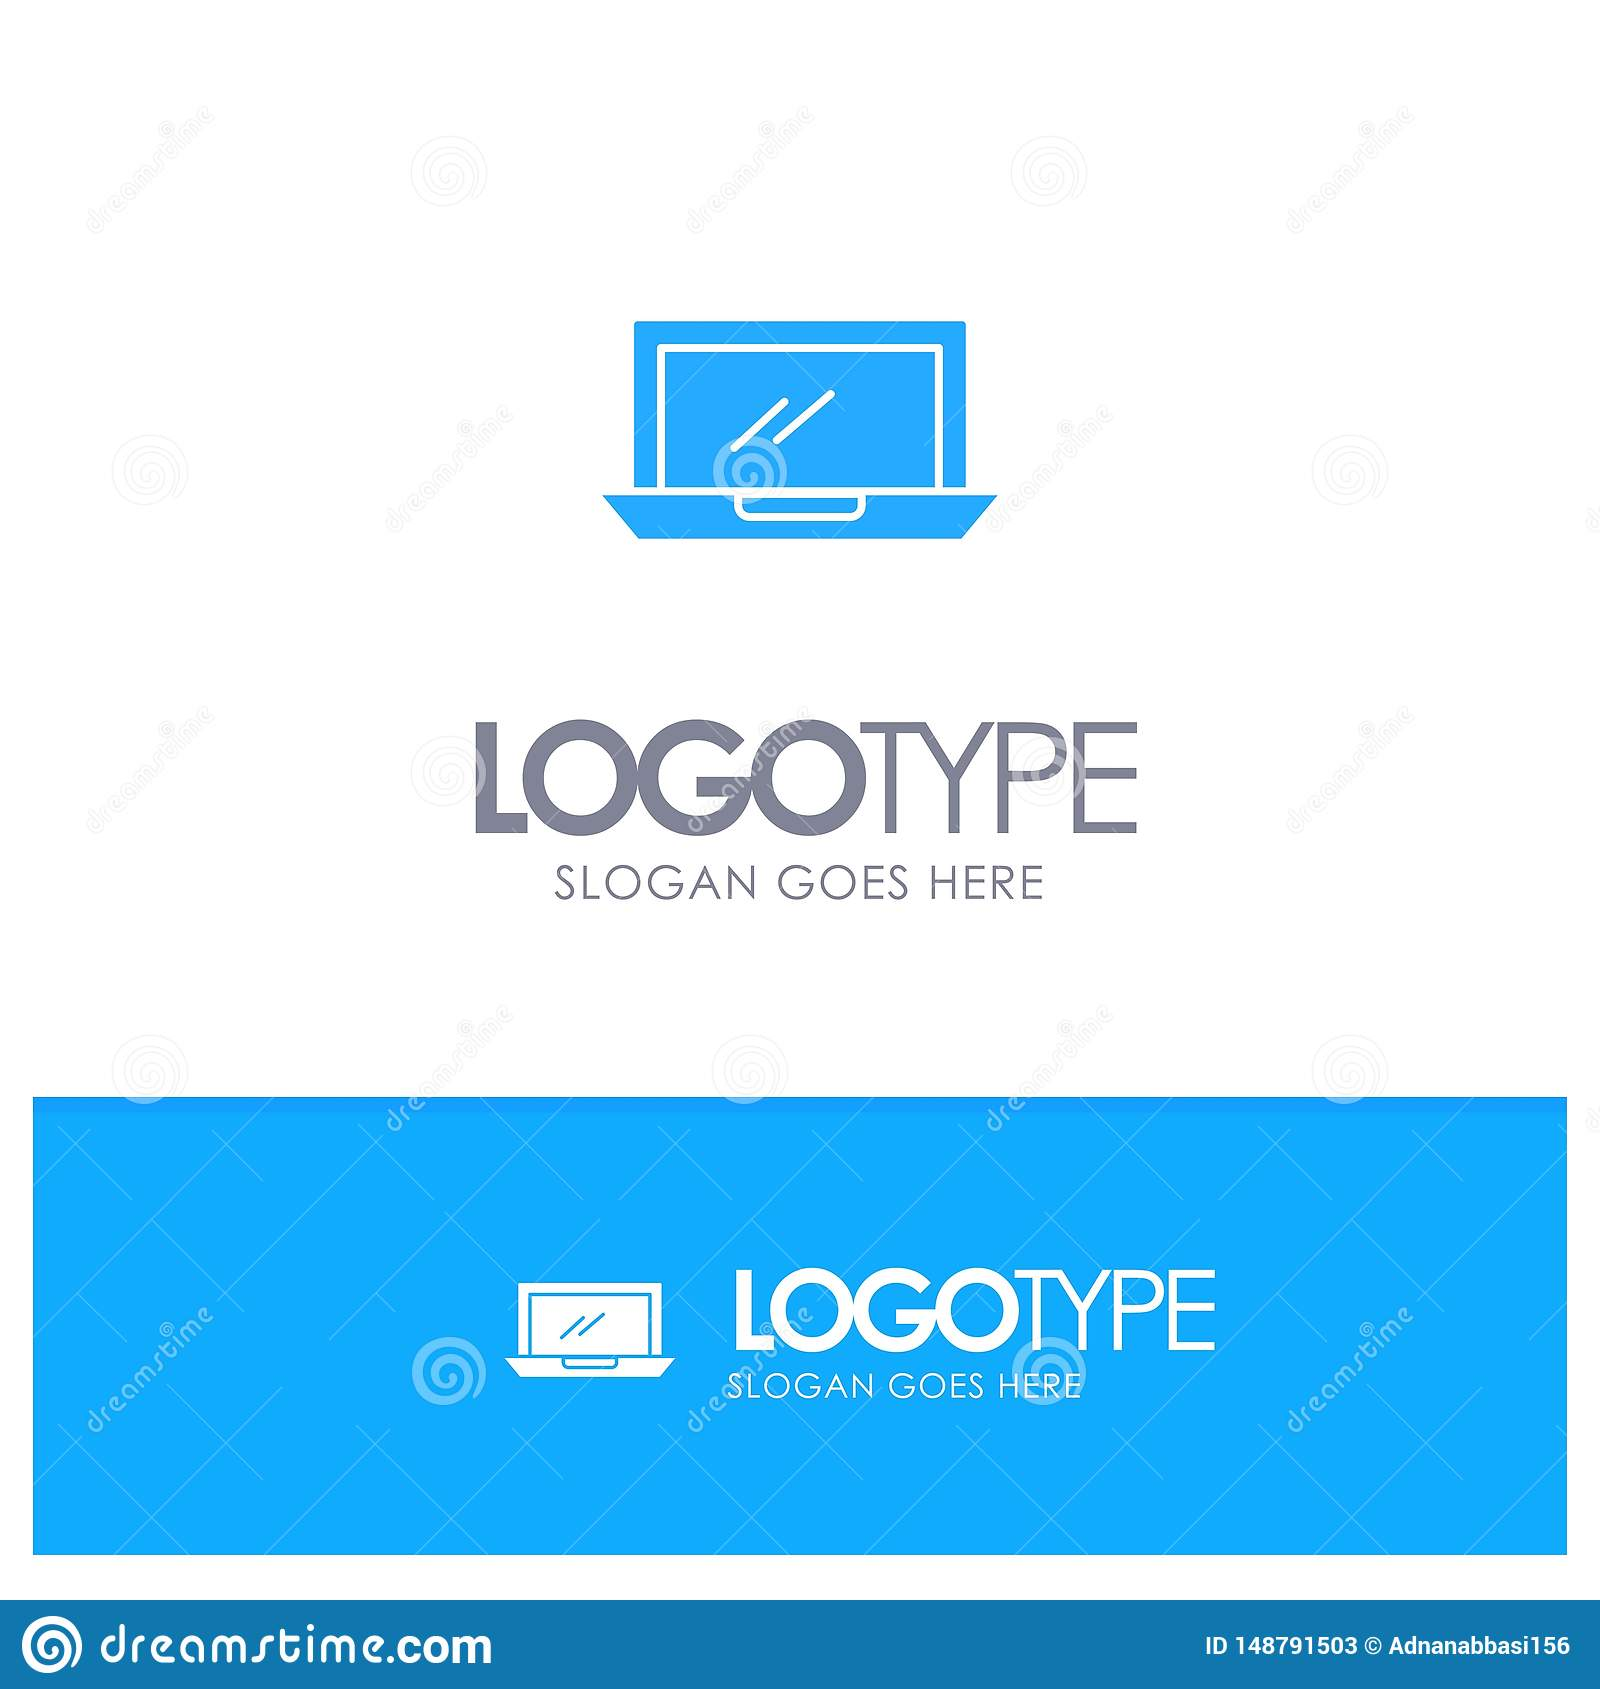 Computer, Desktop, Device, Hardware, Pc Blue Solid Logo with place for tagline